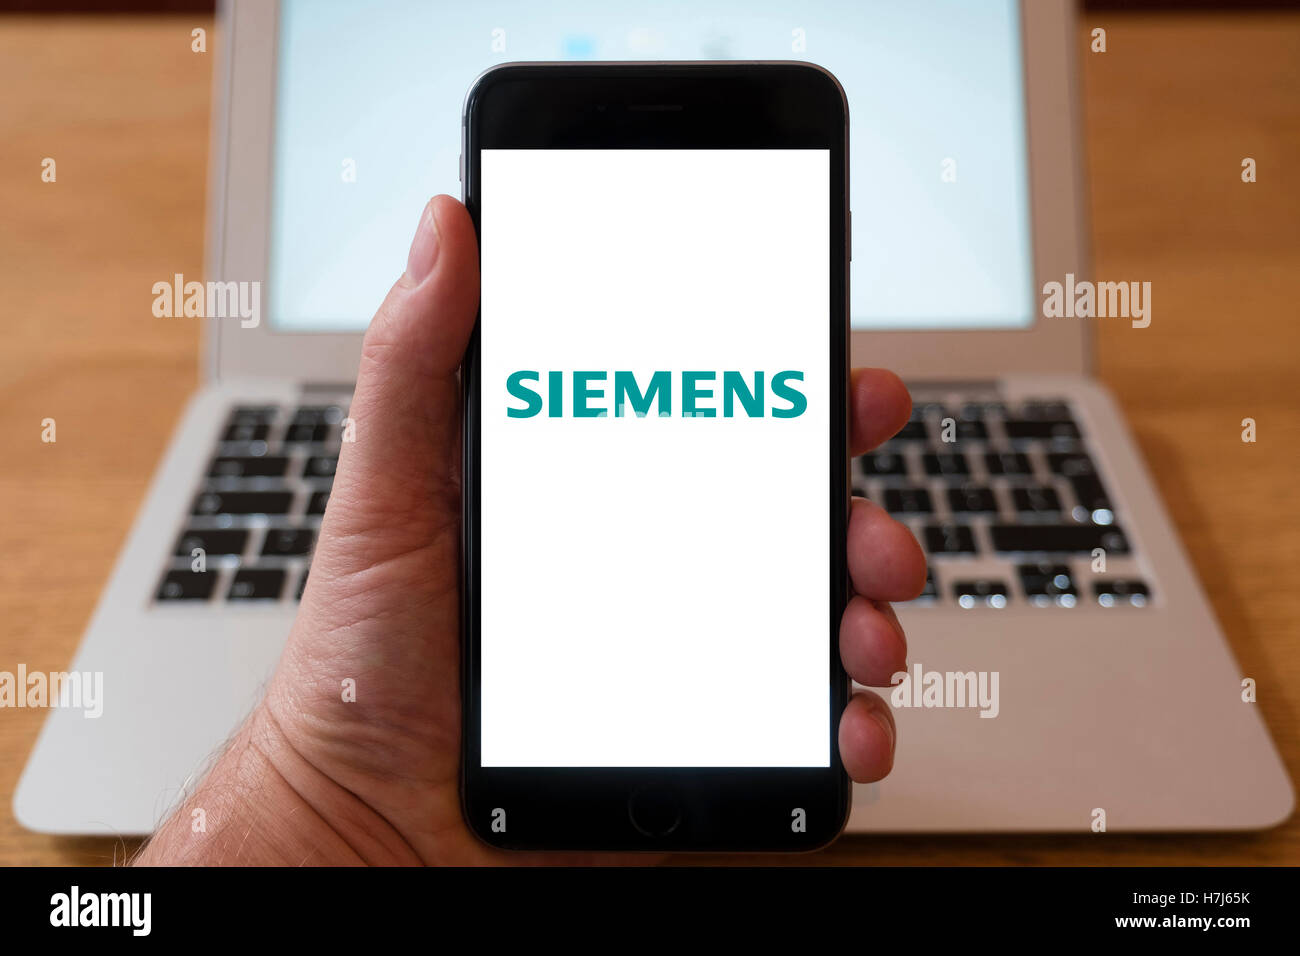 Using iPhone smart phone to display logo of Siemens German Multinational conglomerate. - Stock Image